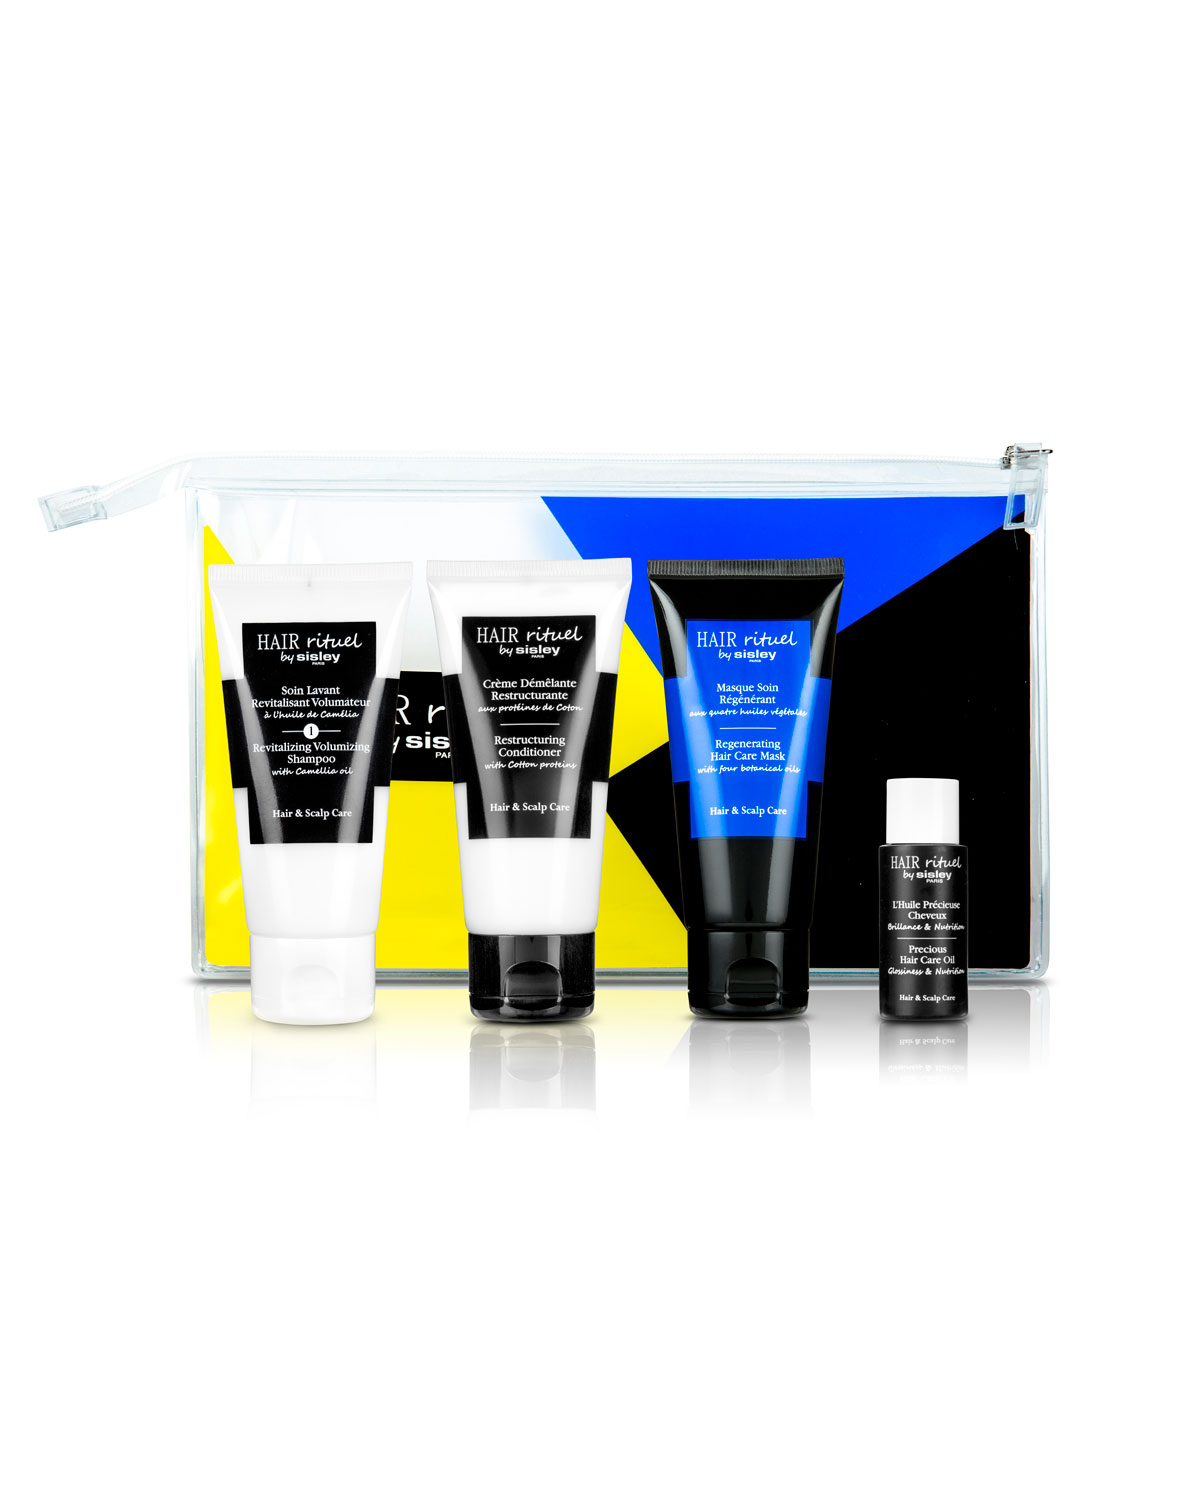 Sisley-Paris Volumizing Discovery Set